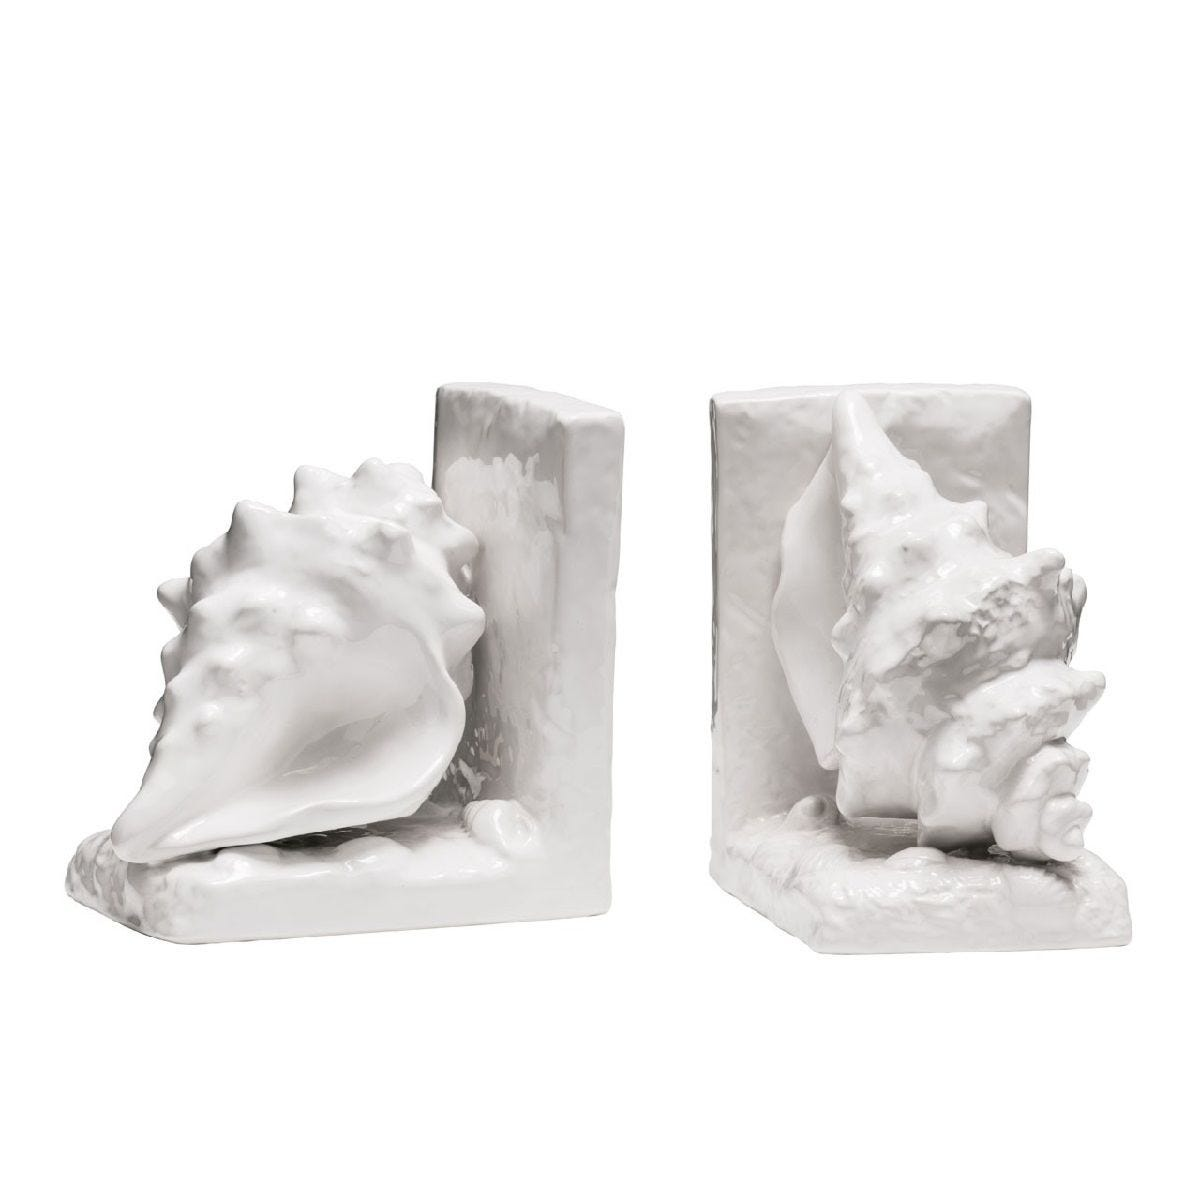 Premier Housewares Conch Set of 2 Bookends - White Dolomite